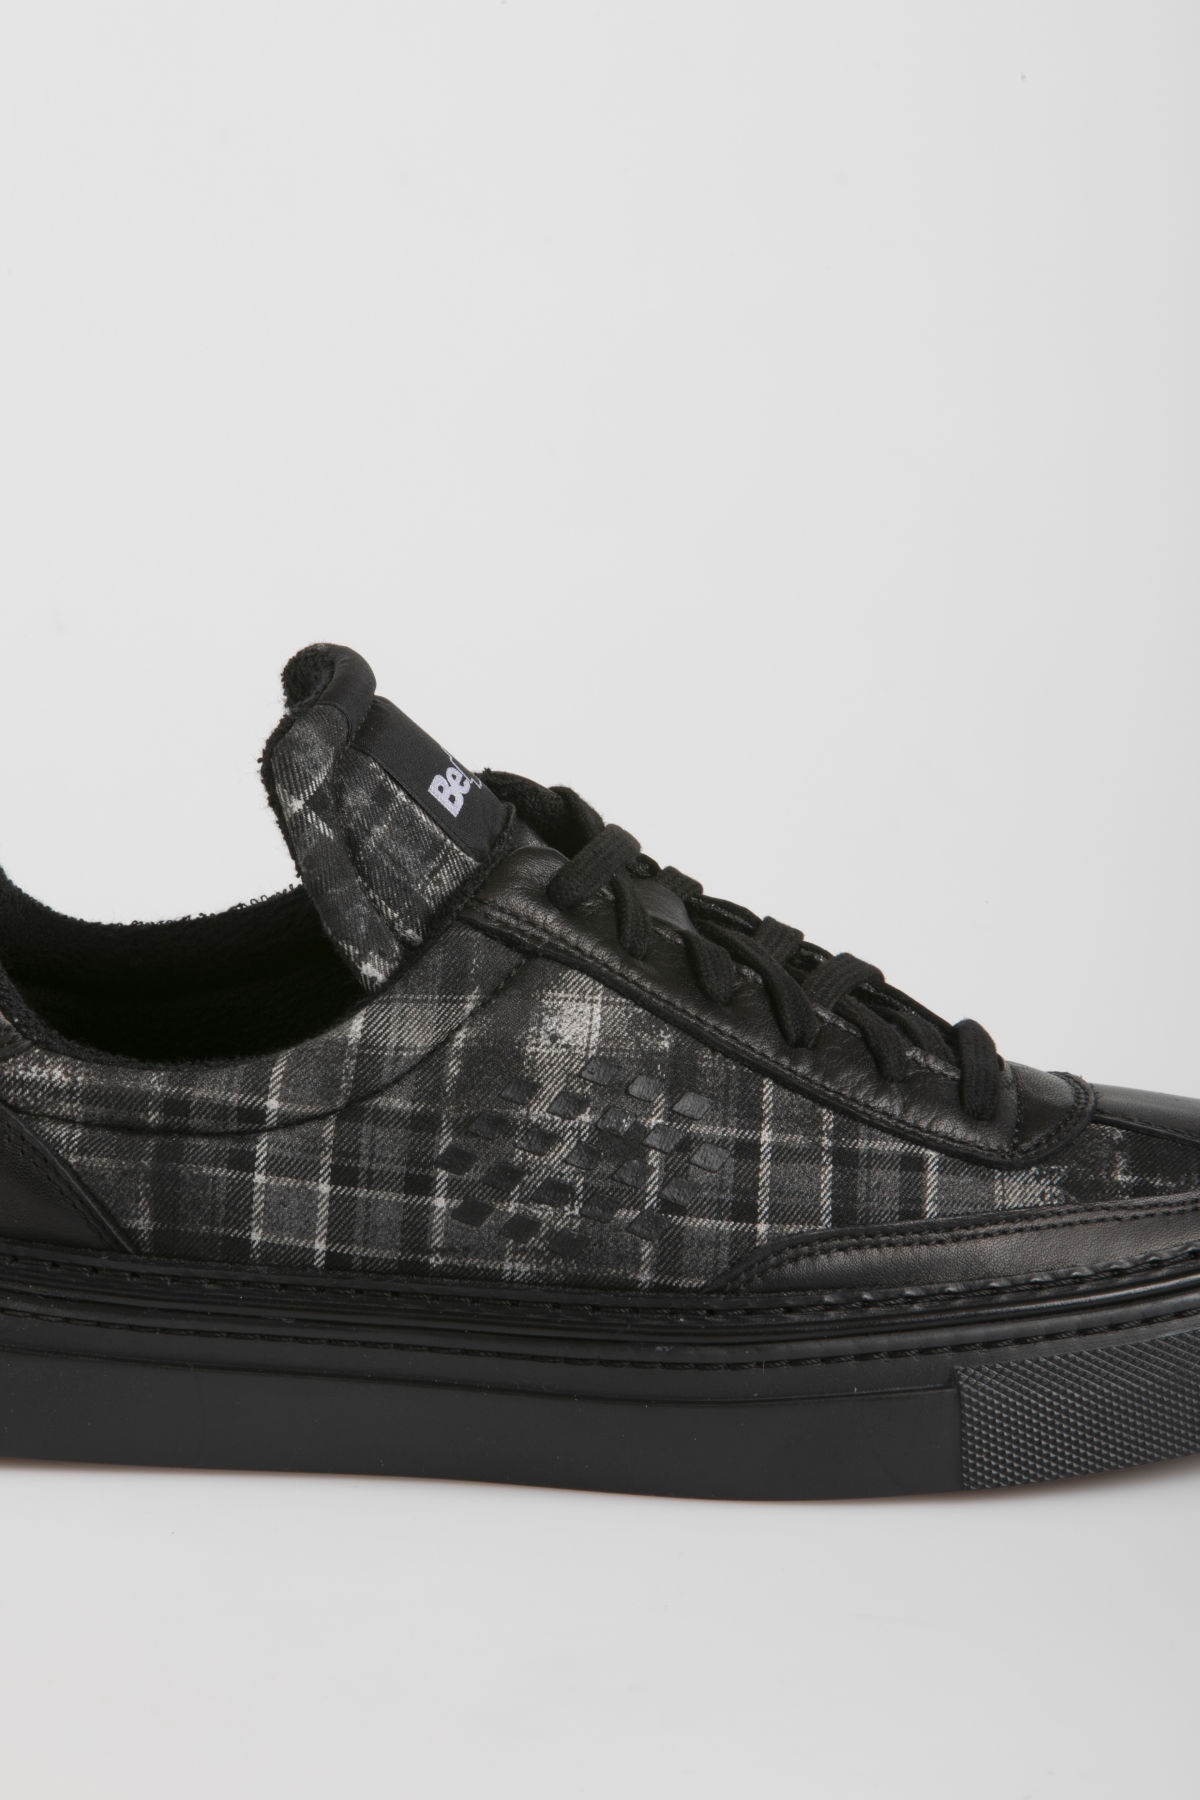 ROXY Shoes for man BEPOSITIVE F/W 19-20